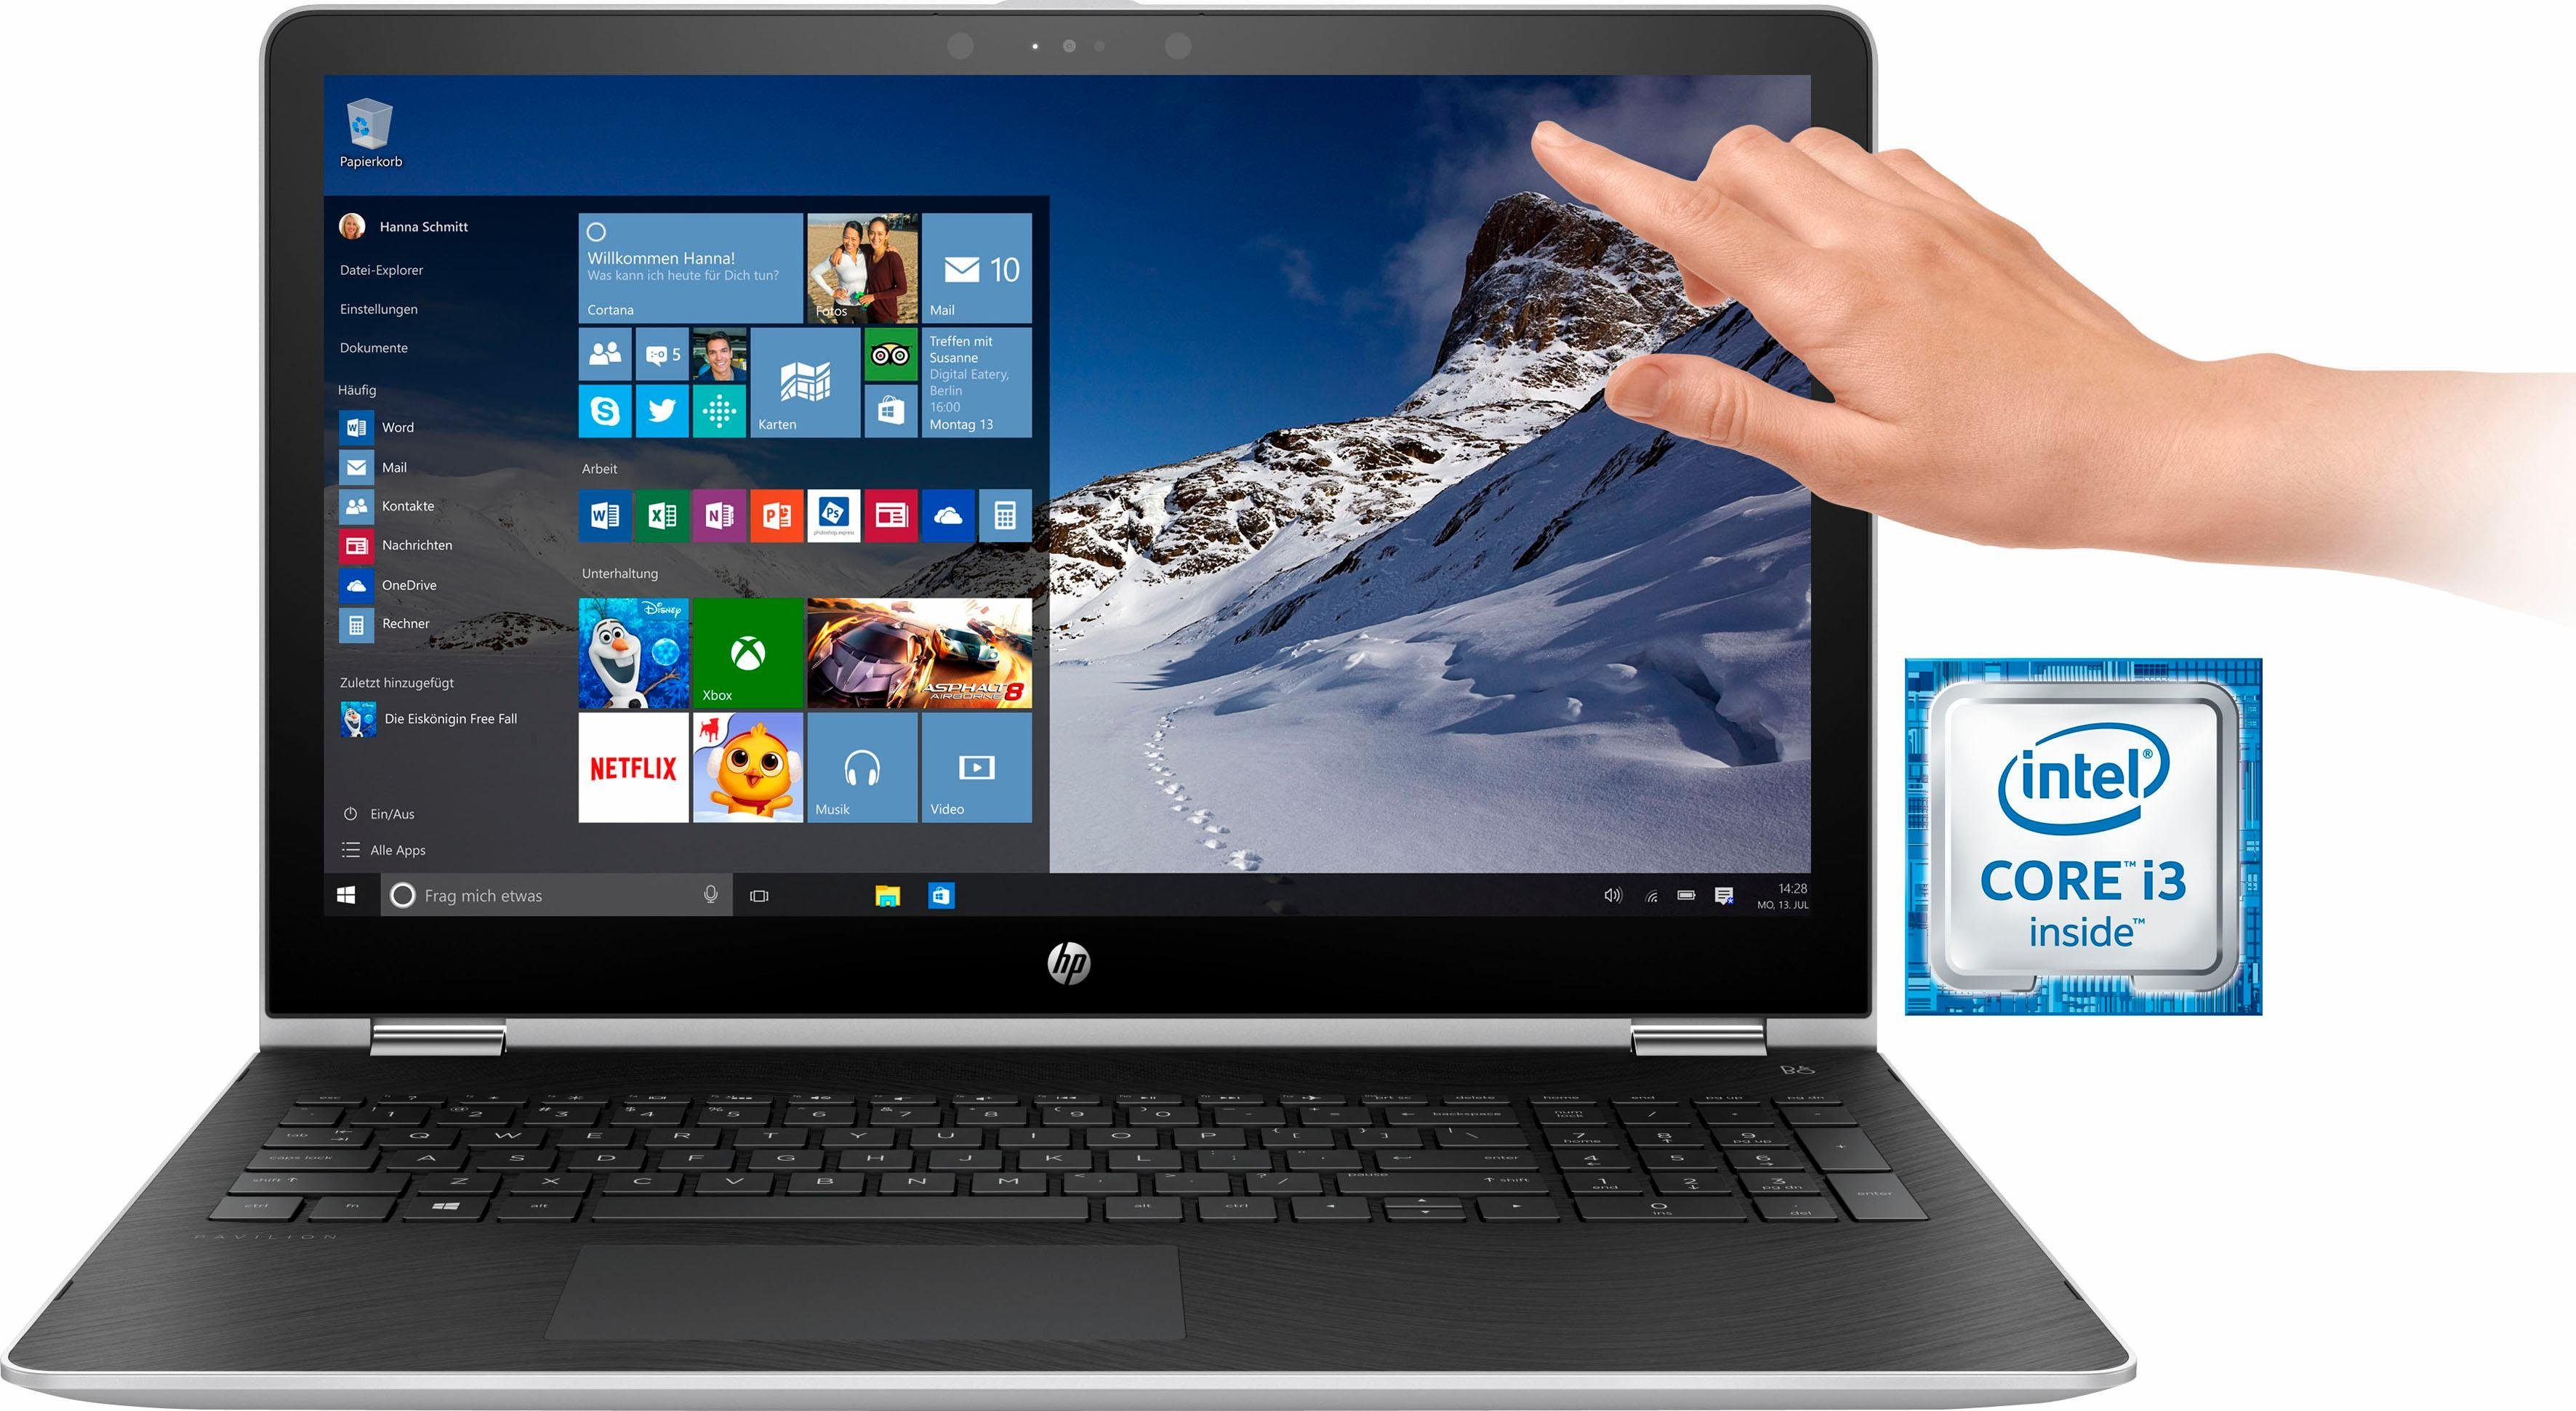 HP Pavilion 15 x360, 15-br013ng Notebook, Intel® Core™ i3, 39,6 cm (15,6 Zoll), 1000 GB Speicher